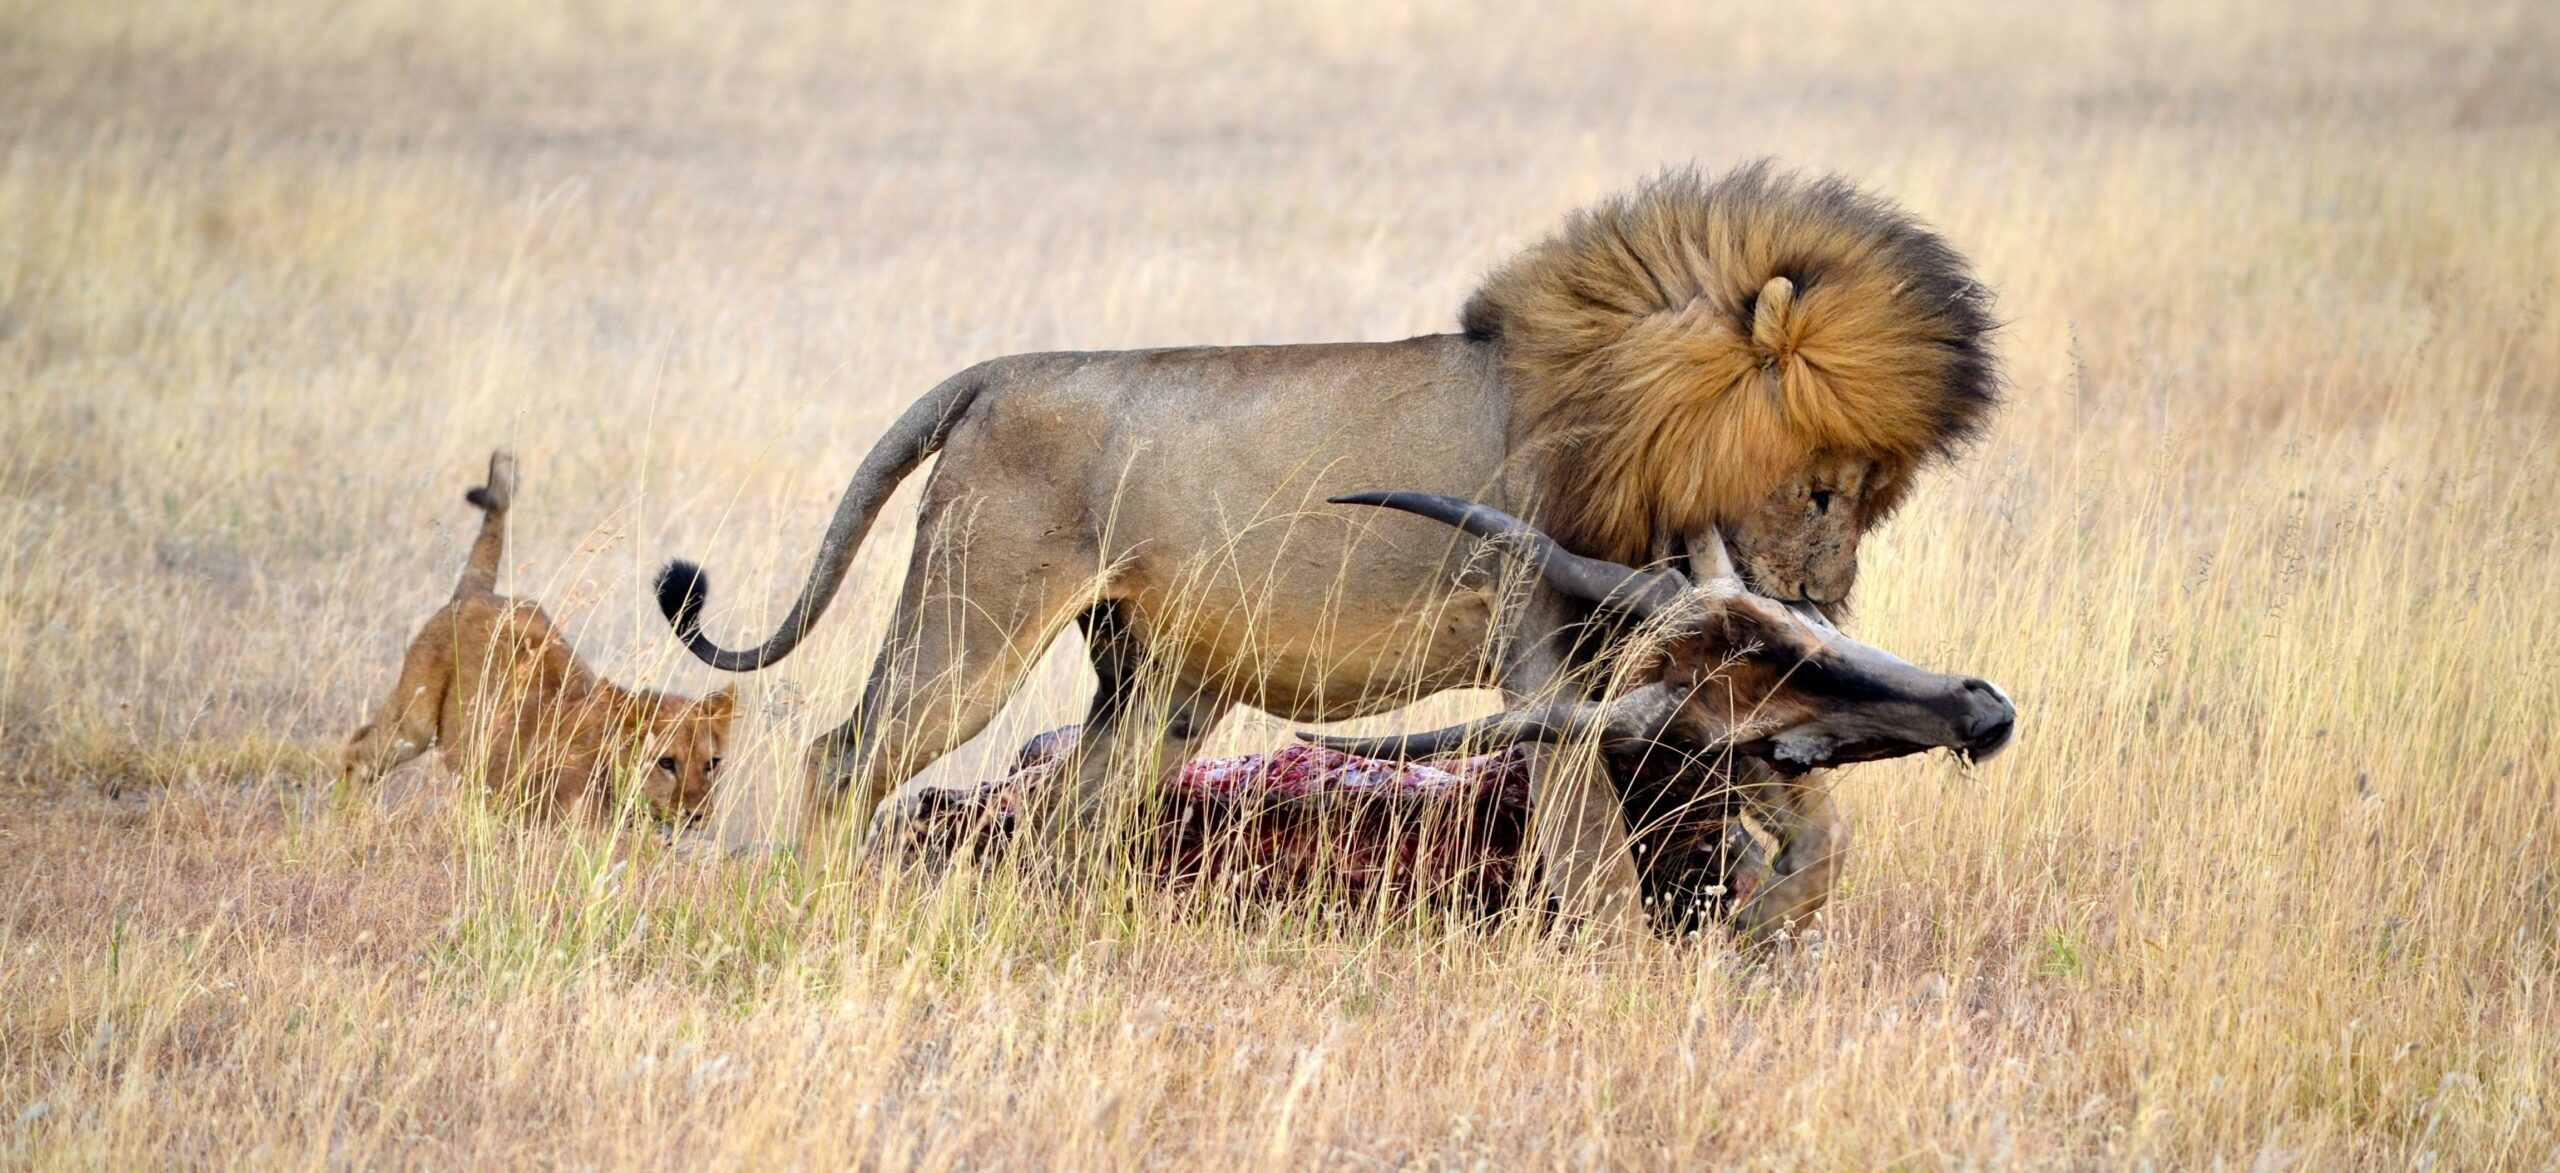 lion with a topi kill in the open plains. a cub is trailing viewed on safari in tanzania